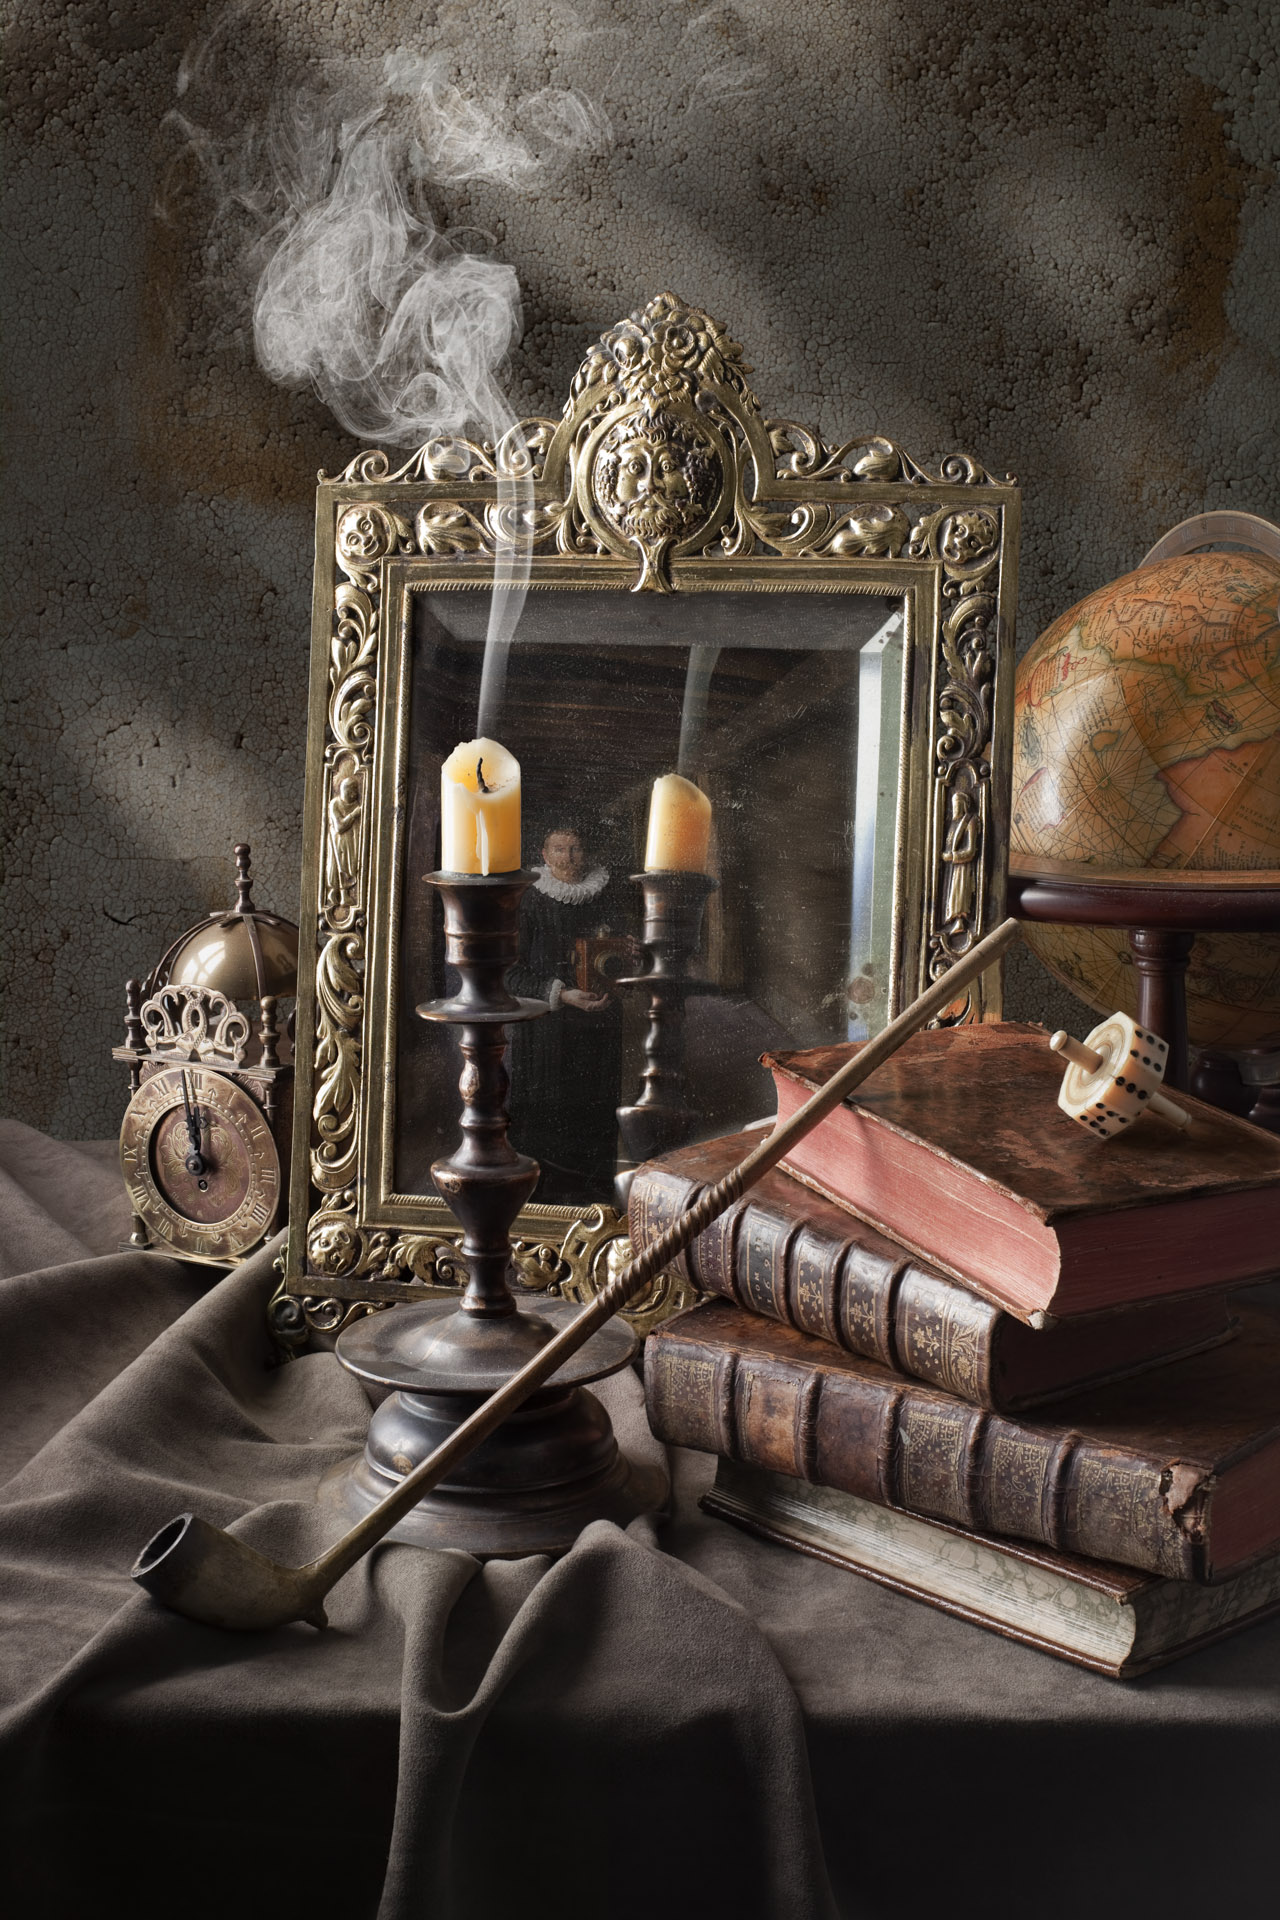 Still life with candle and mirror